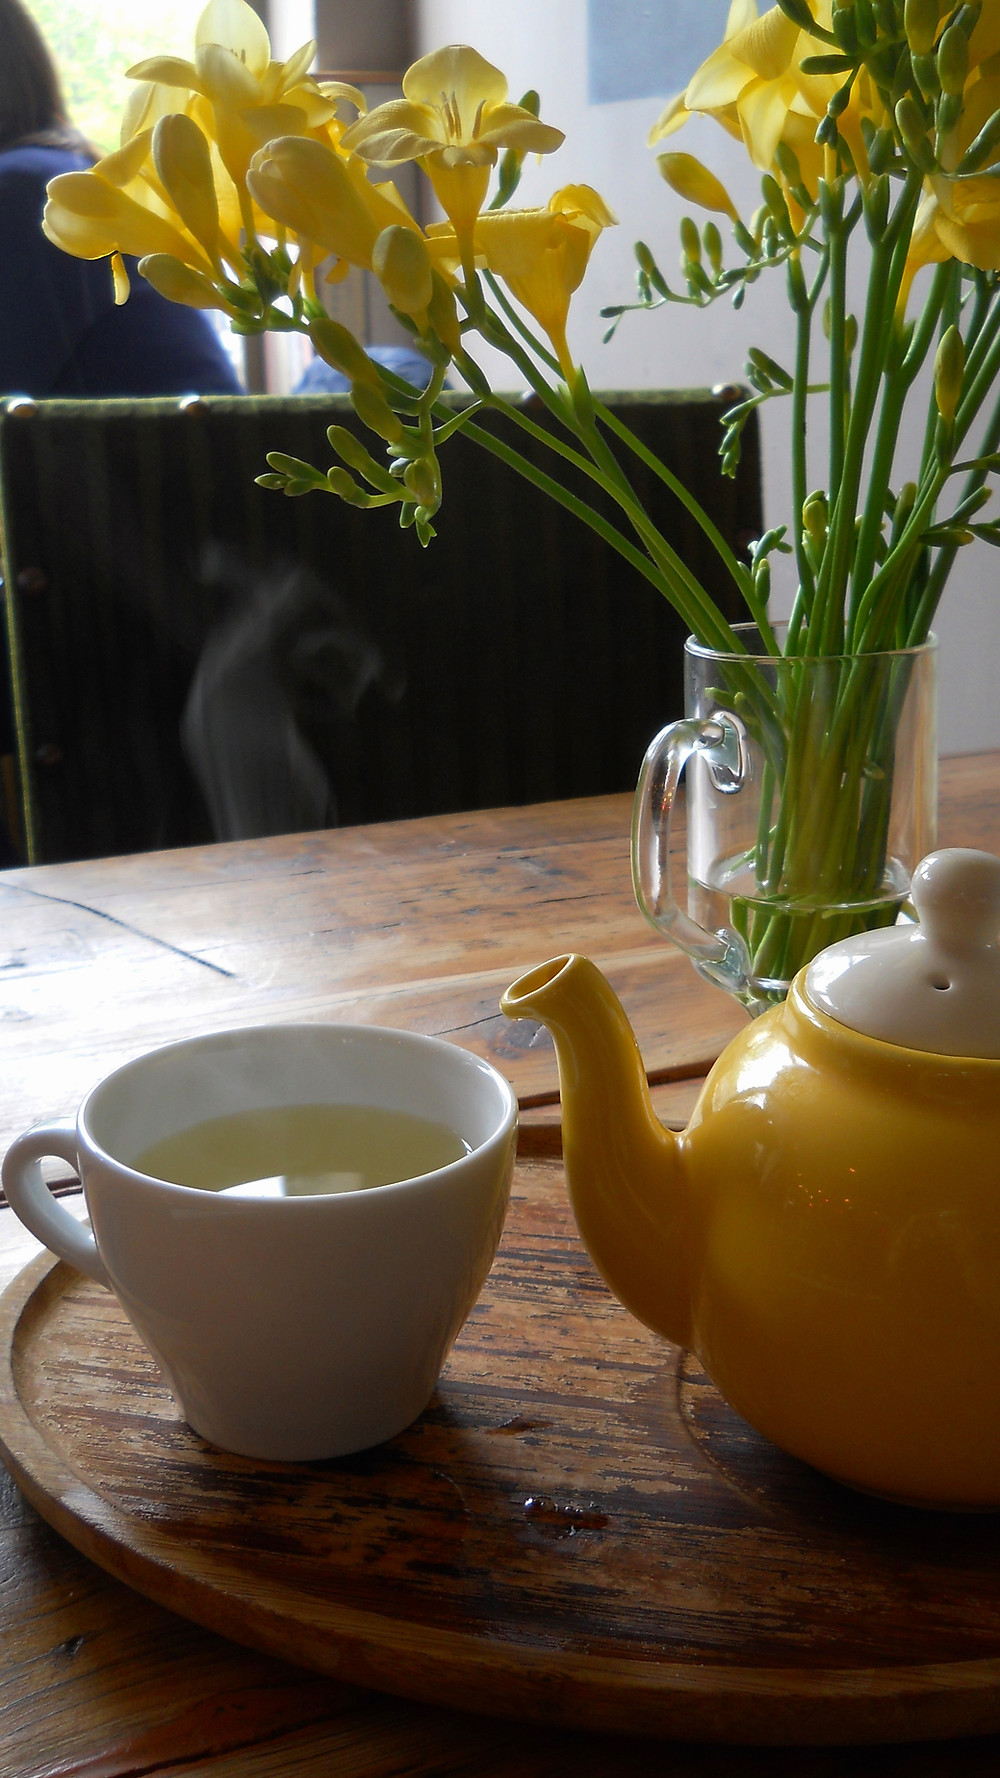 Freshly brewed, pipping hot cup of tea with yellow tea pot and display of bright yellow freesia flowers. l